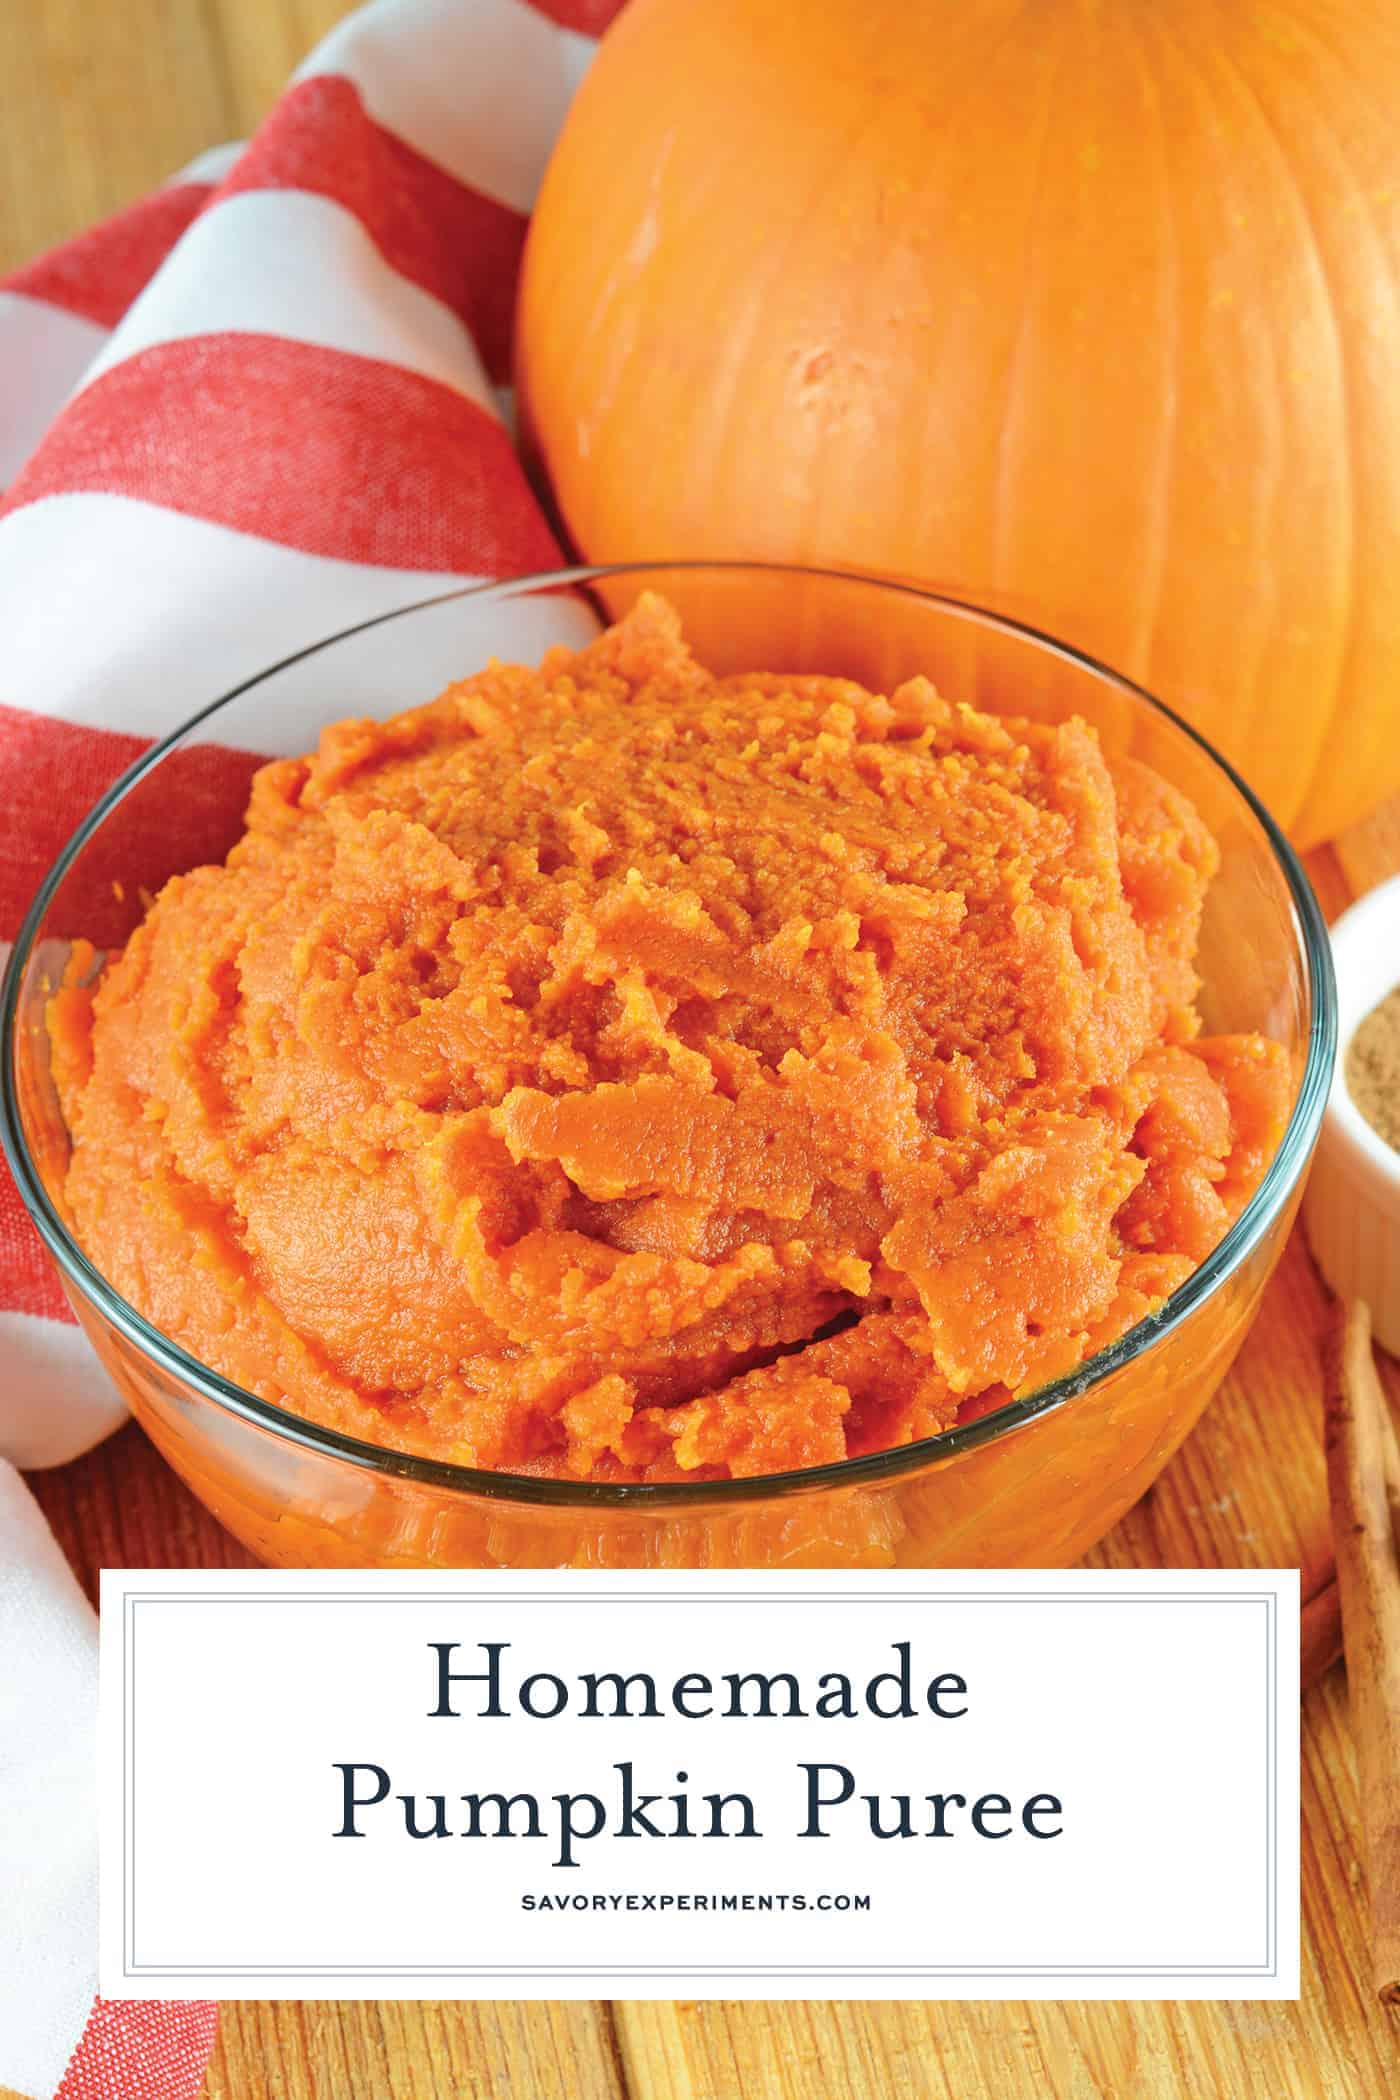 Make some Homemade Pumpkin Puree using one ingredient: pumpkin! Learn about the pie pumpkin and find pumpkin recipes to use your pumpkin puree in! #pumpkinpureerecipes #howtomakepumpkinpuree www.savoryexperiments.com